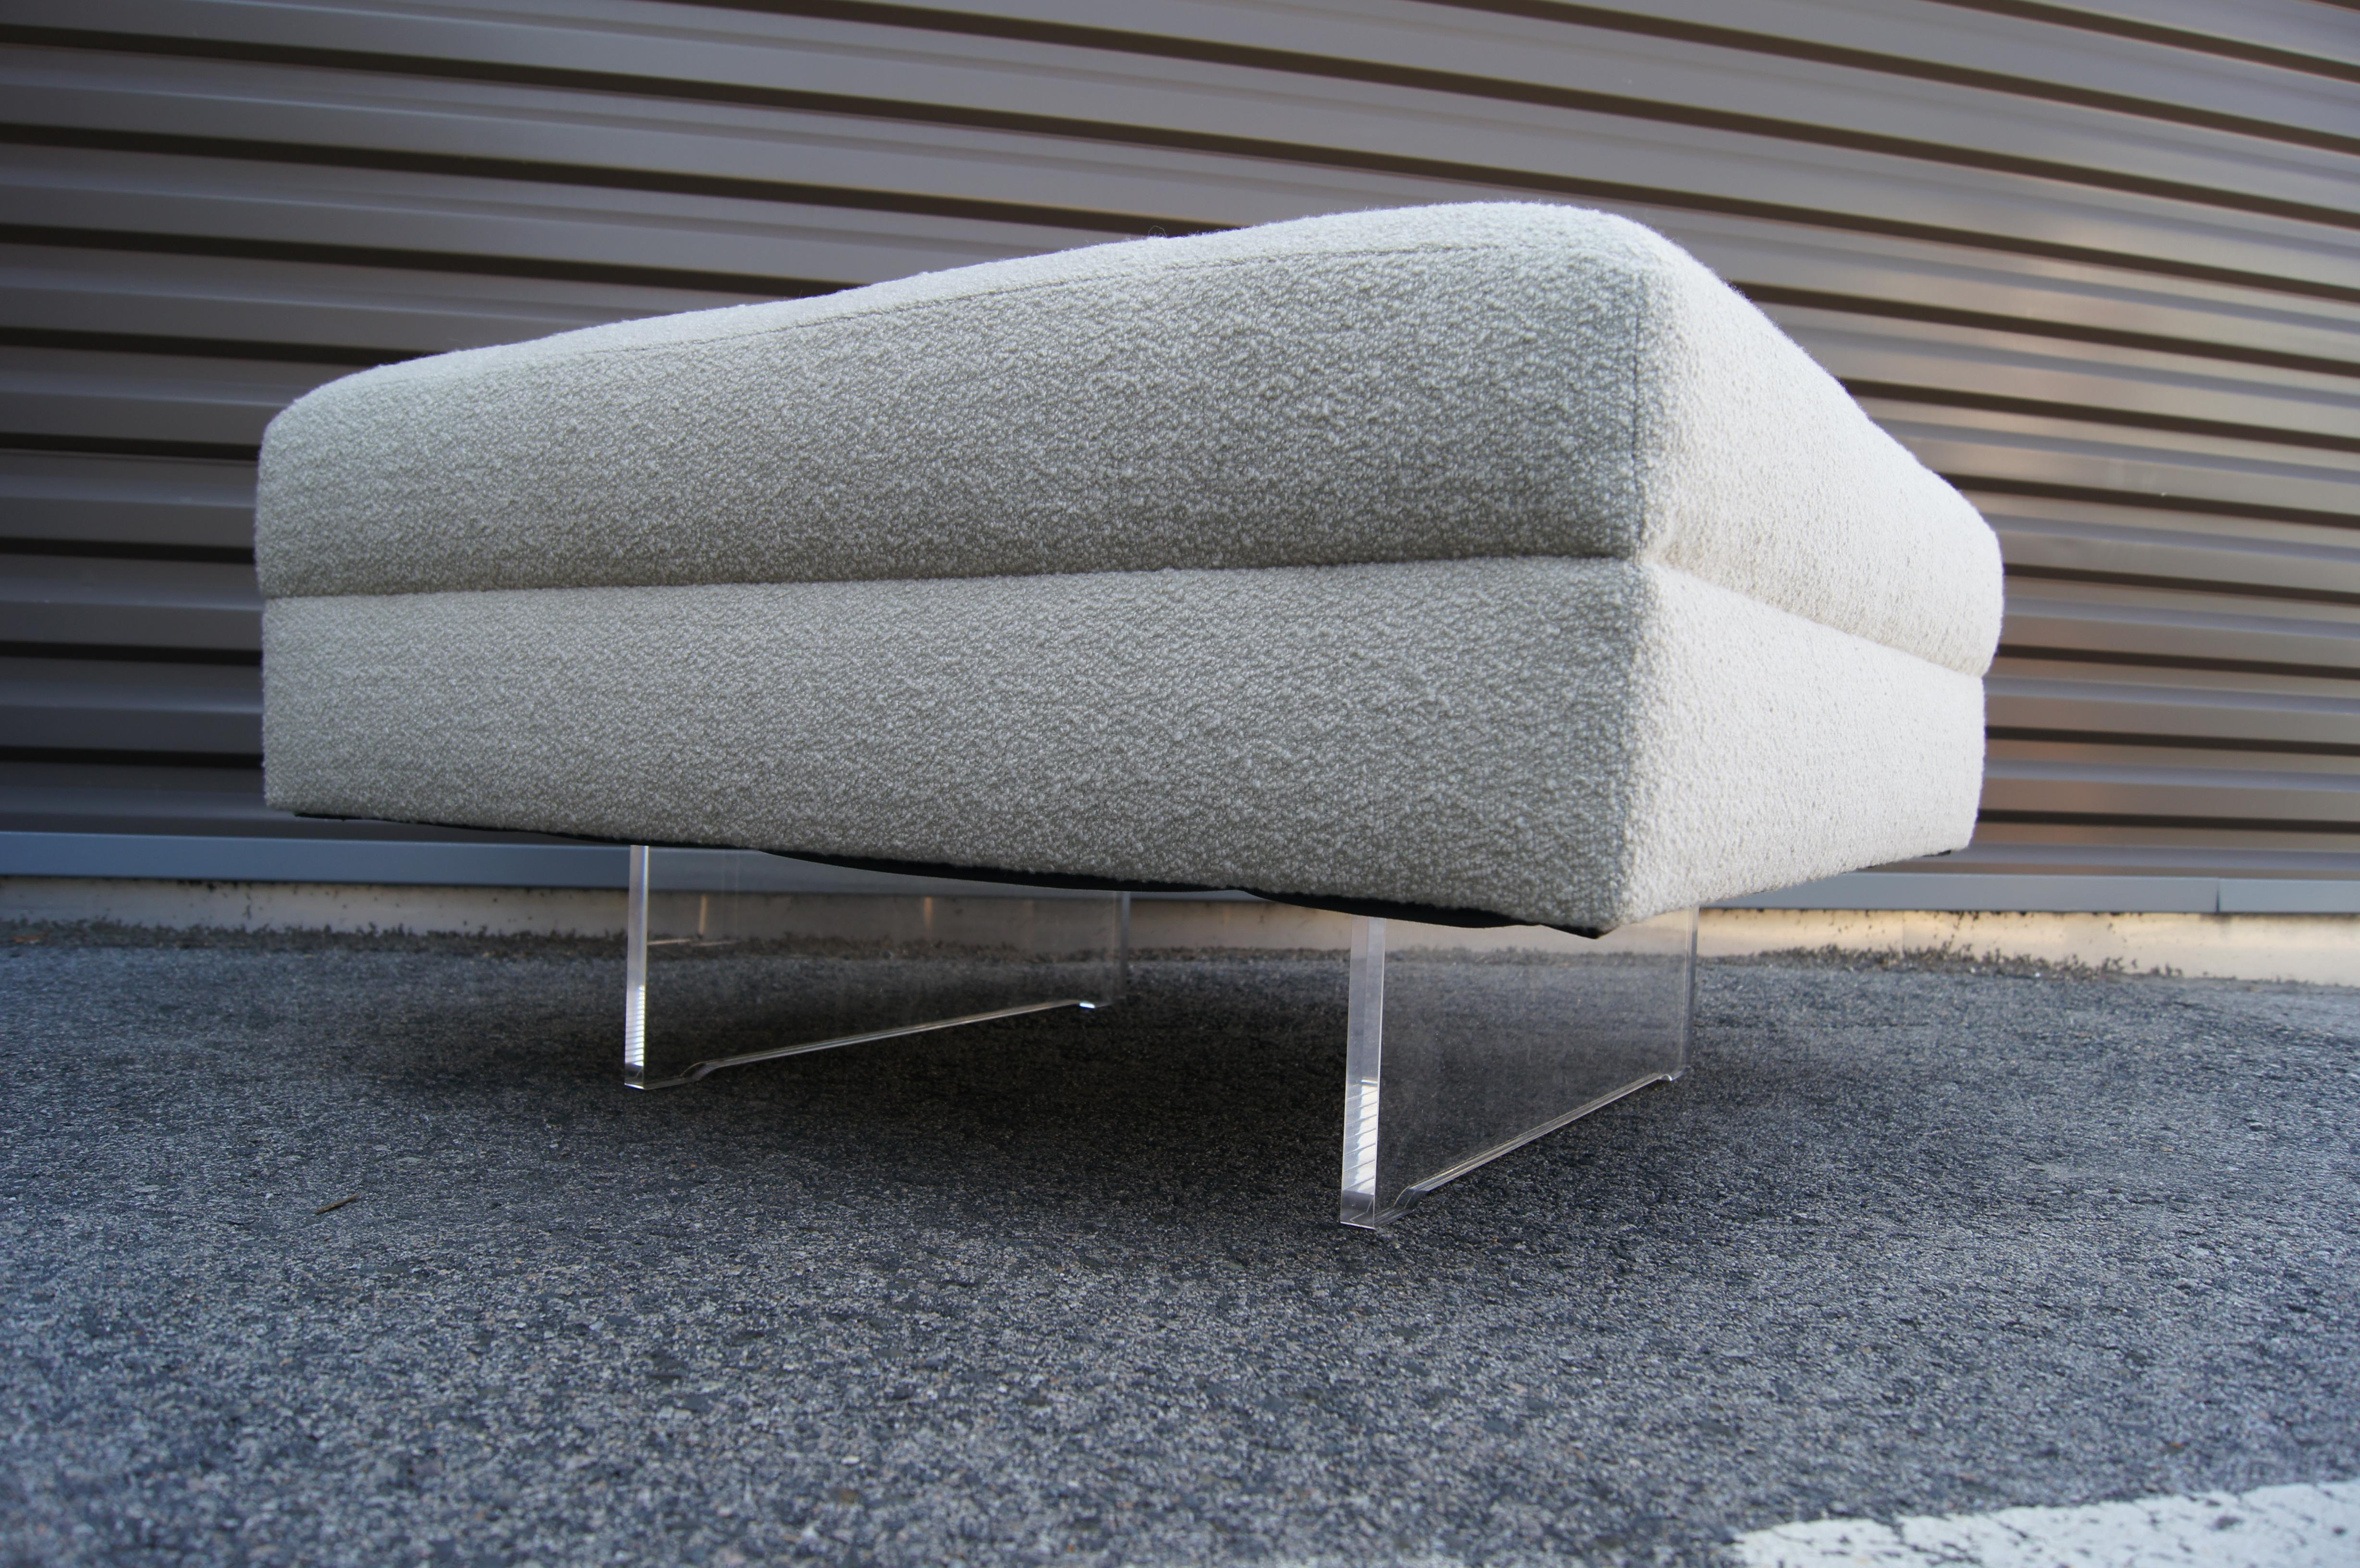 Miraculous Tufted Ottoman With Lucite Legs Creativecarmelina Interior Chair Design Creativecarmelinacom